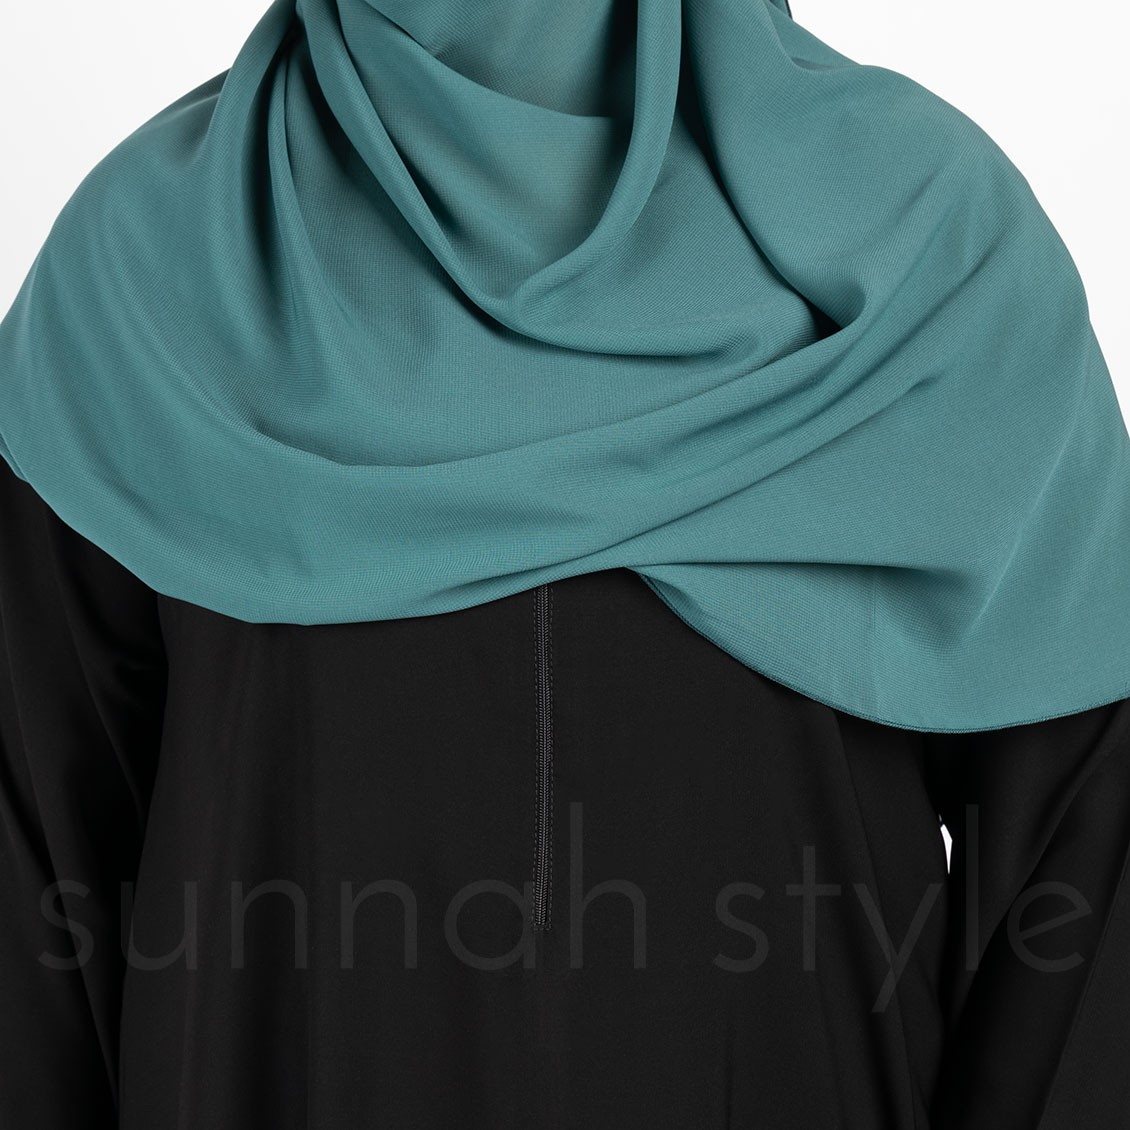 Sunnah Style Plain Closed Abaya Slim Black